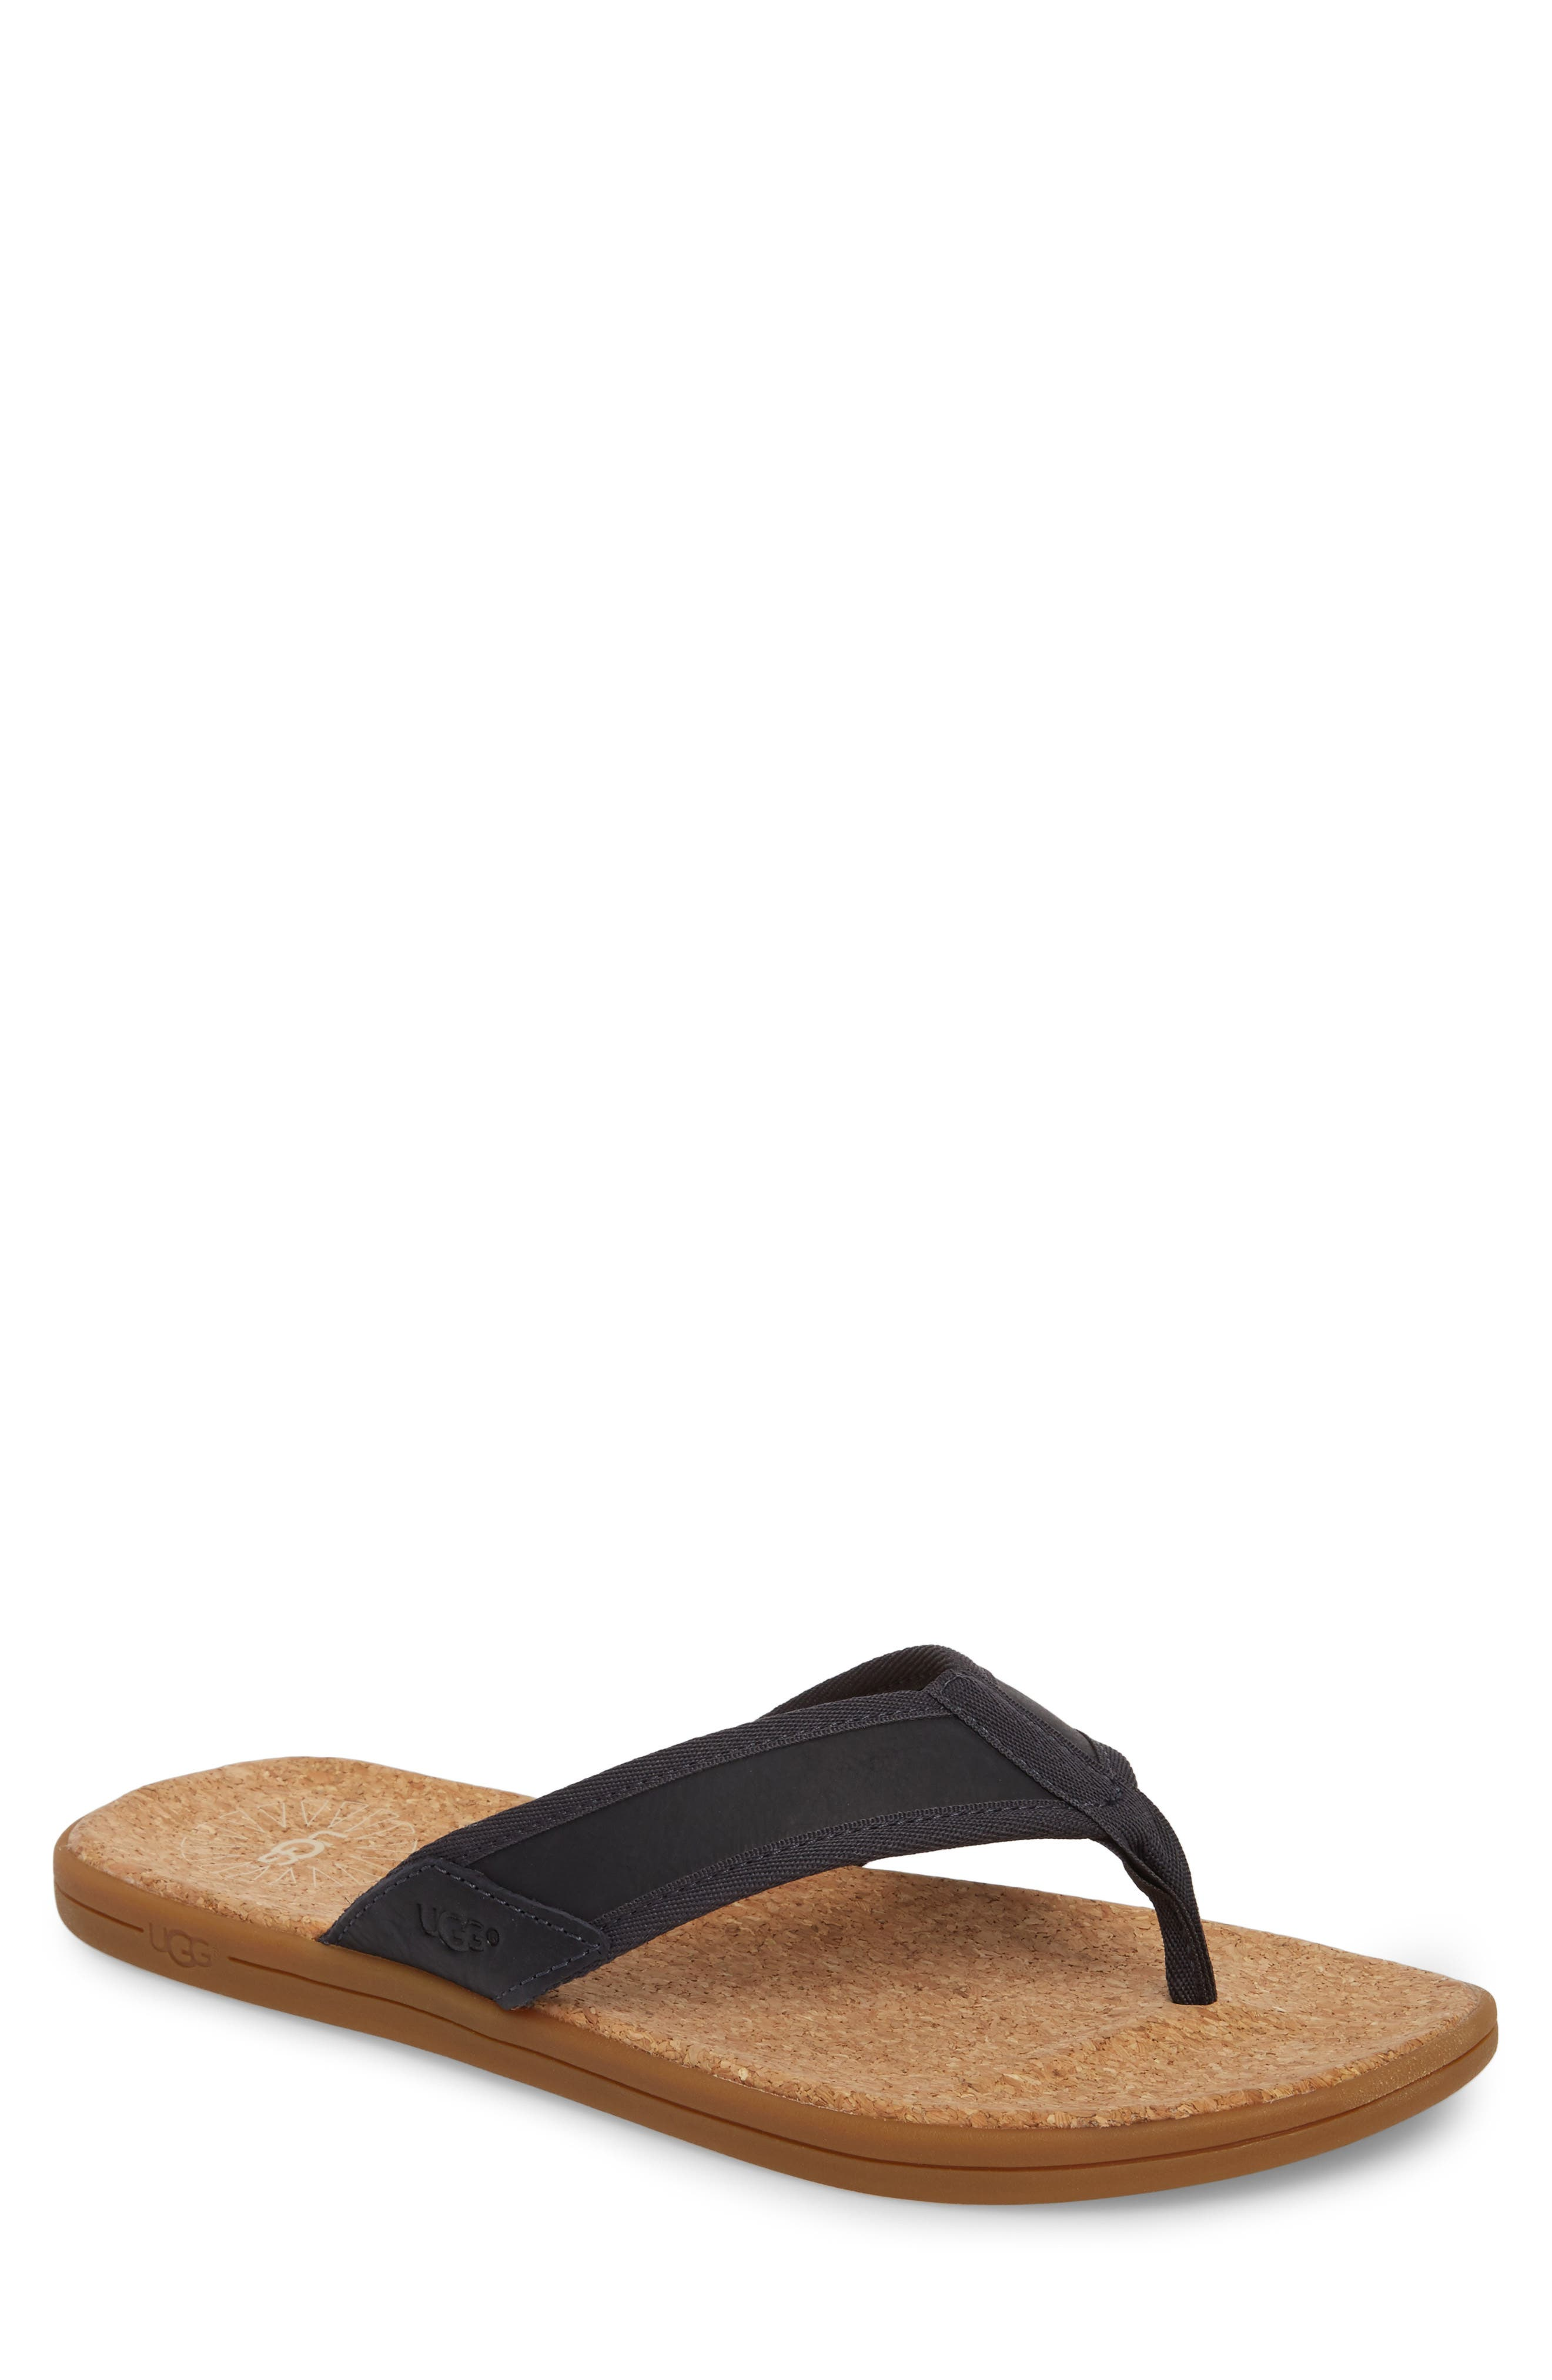 Seaside Flip Flop,                         Main,                         color, Navy